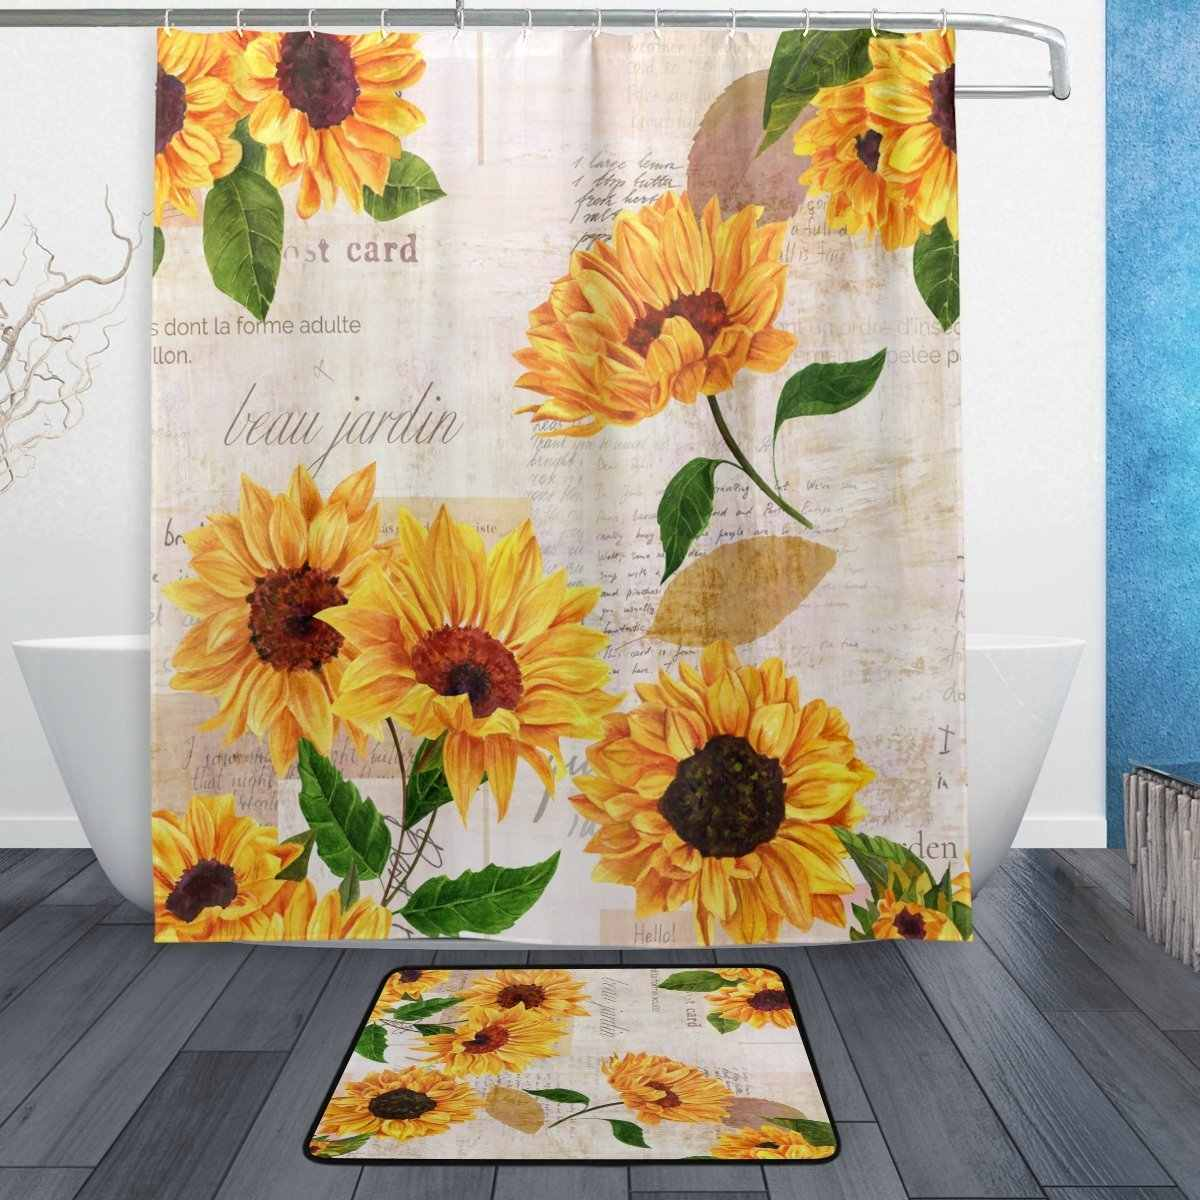 Summer Sunflower Shower Curtain and Mat Set, Vintage Retro Floral Waterproof Fabric Bathroom Curtain